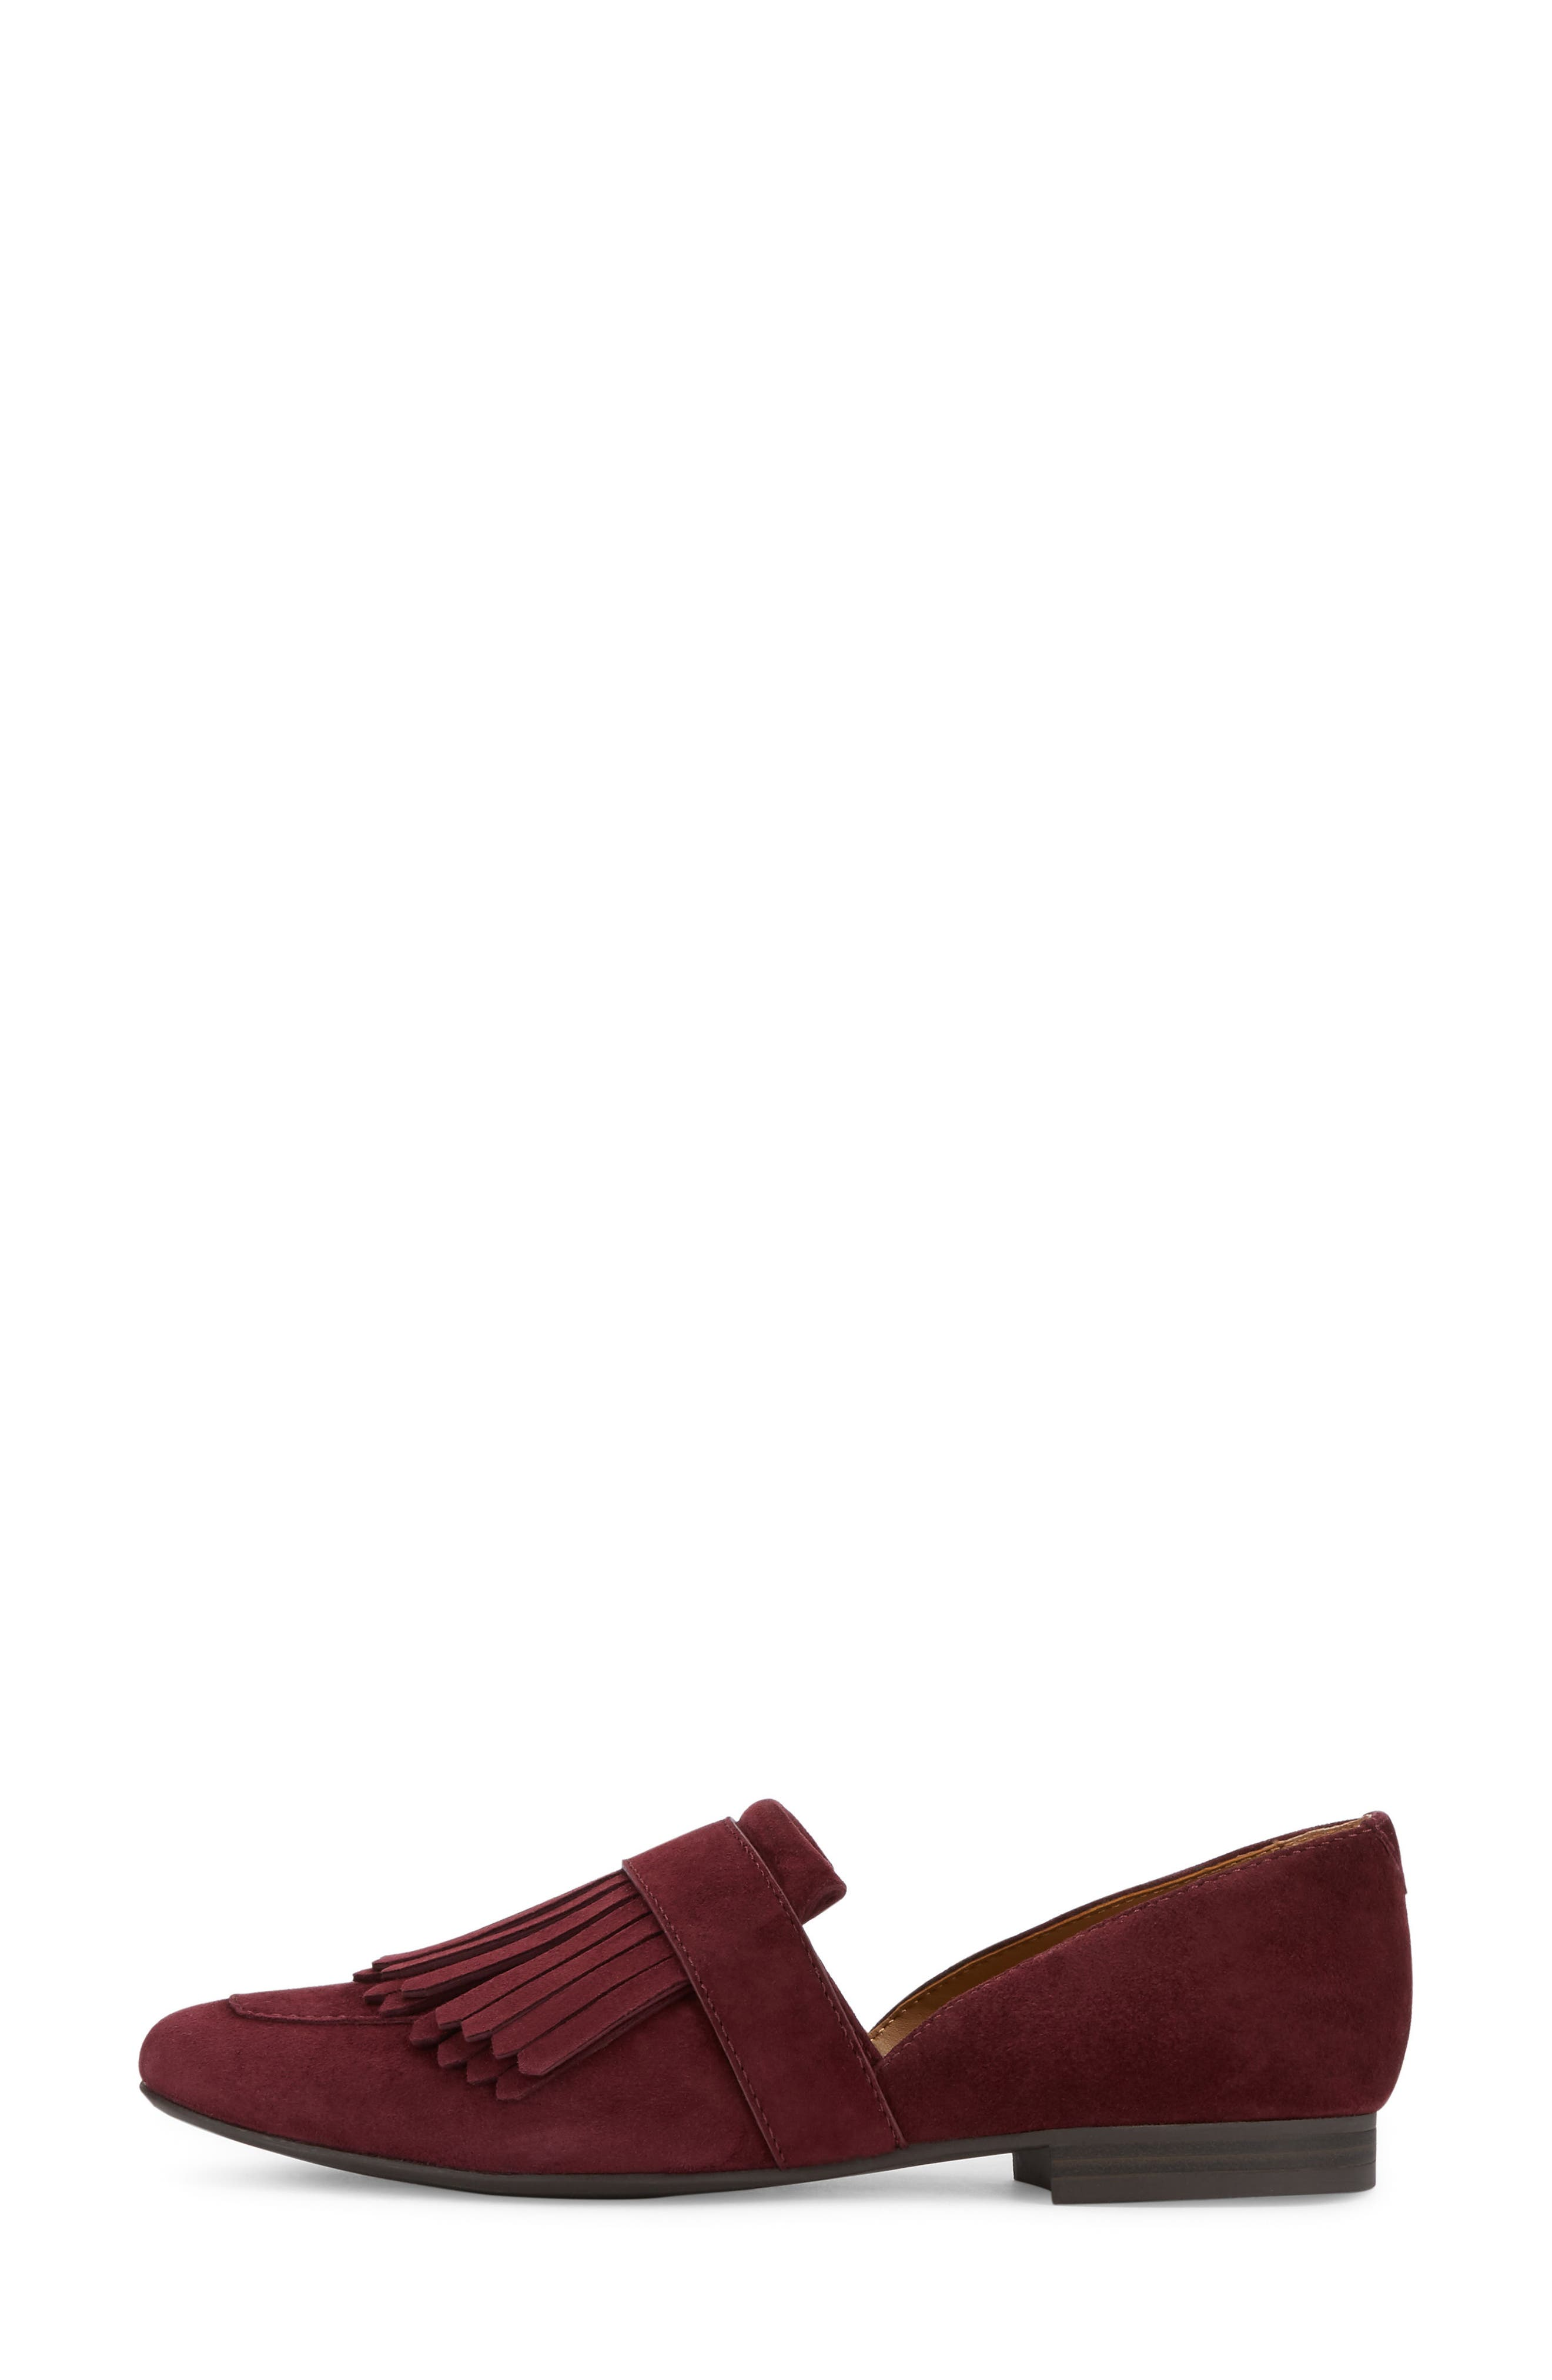 'Harlow' Kiltie Leather Loafer,                             Alternate thumbnail 3, color,                             Wine Suede